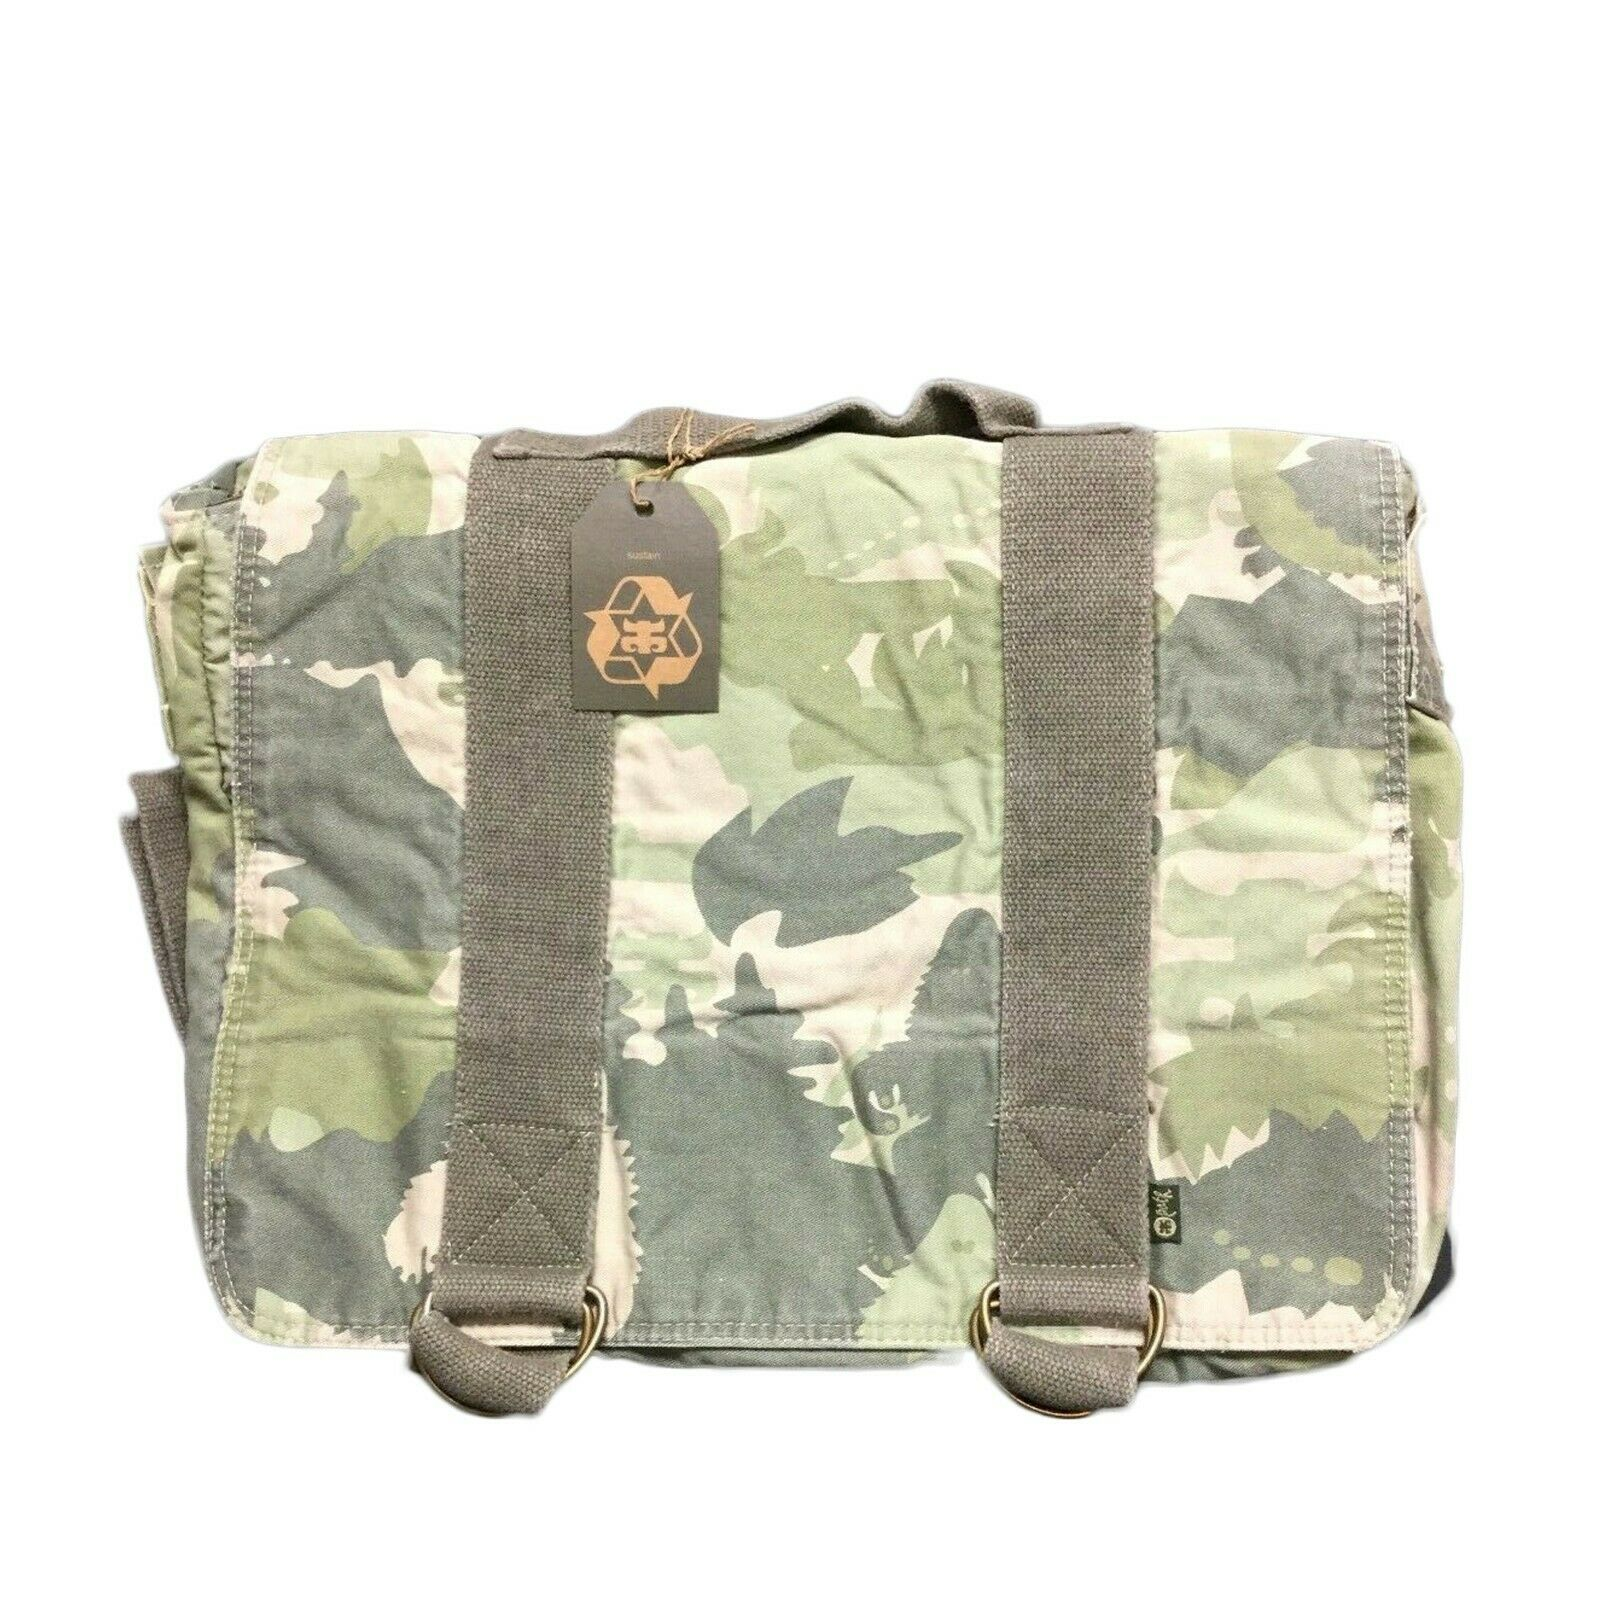 IPath Bigfoot Laptop Messnger Bag Camo Canvas Padded Case Utility Briefcase. Buy it now for 26.39